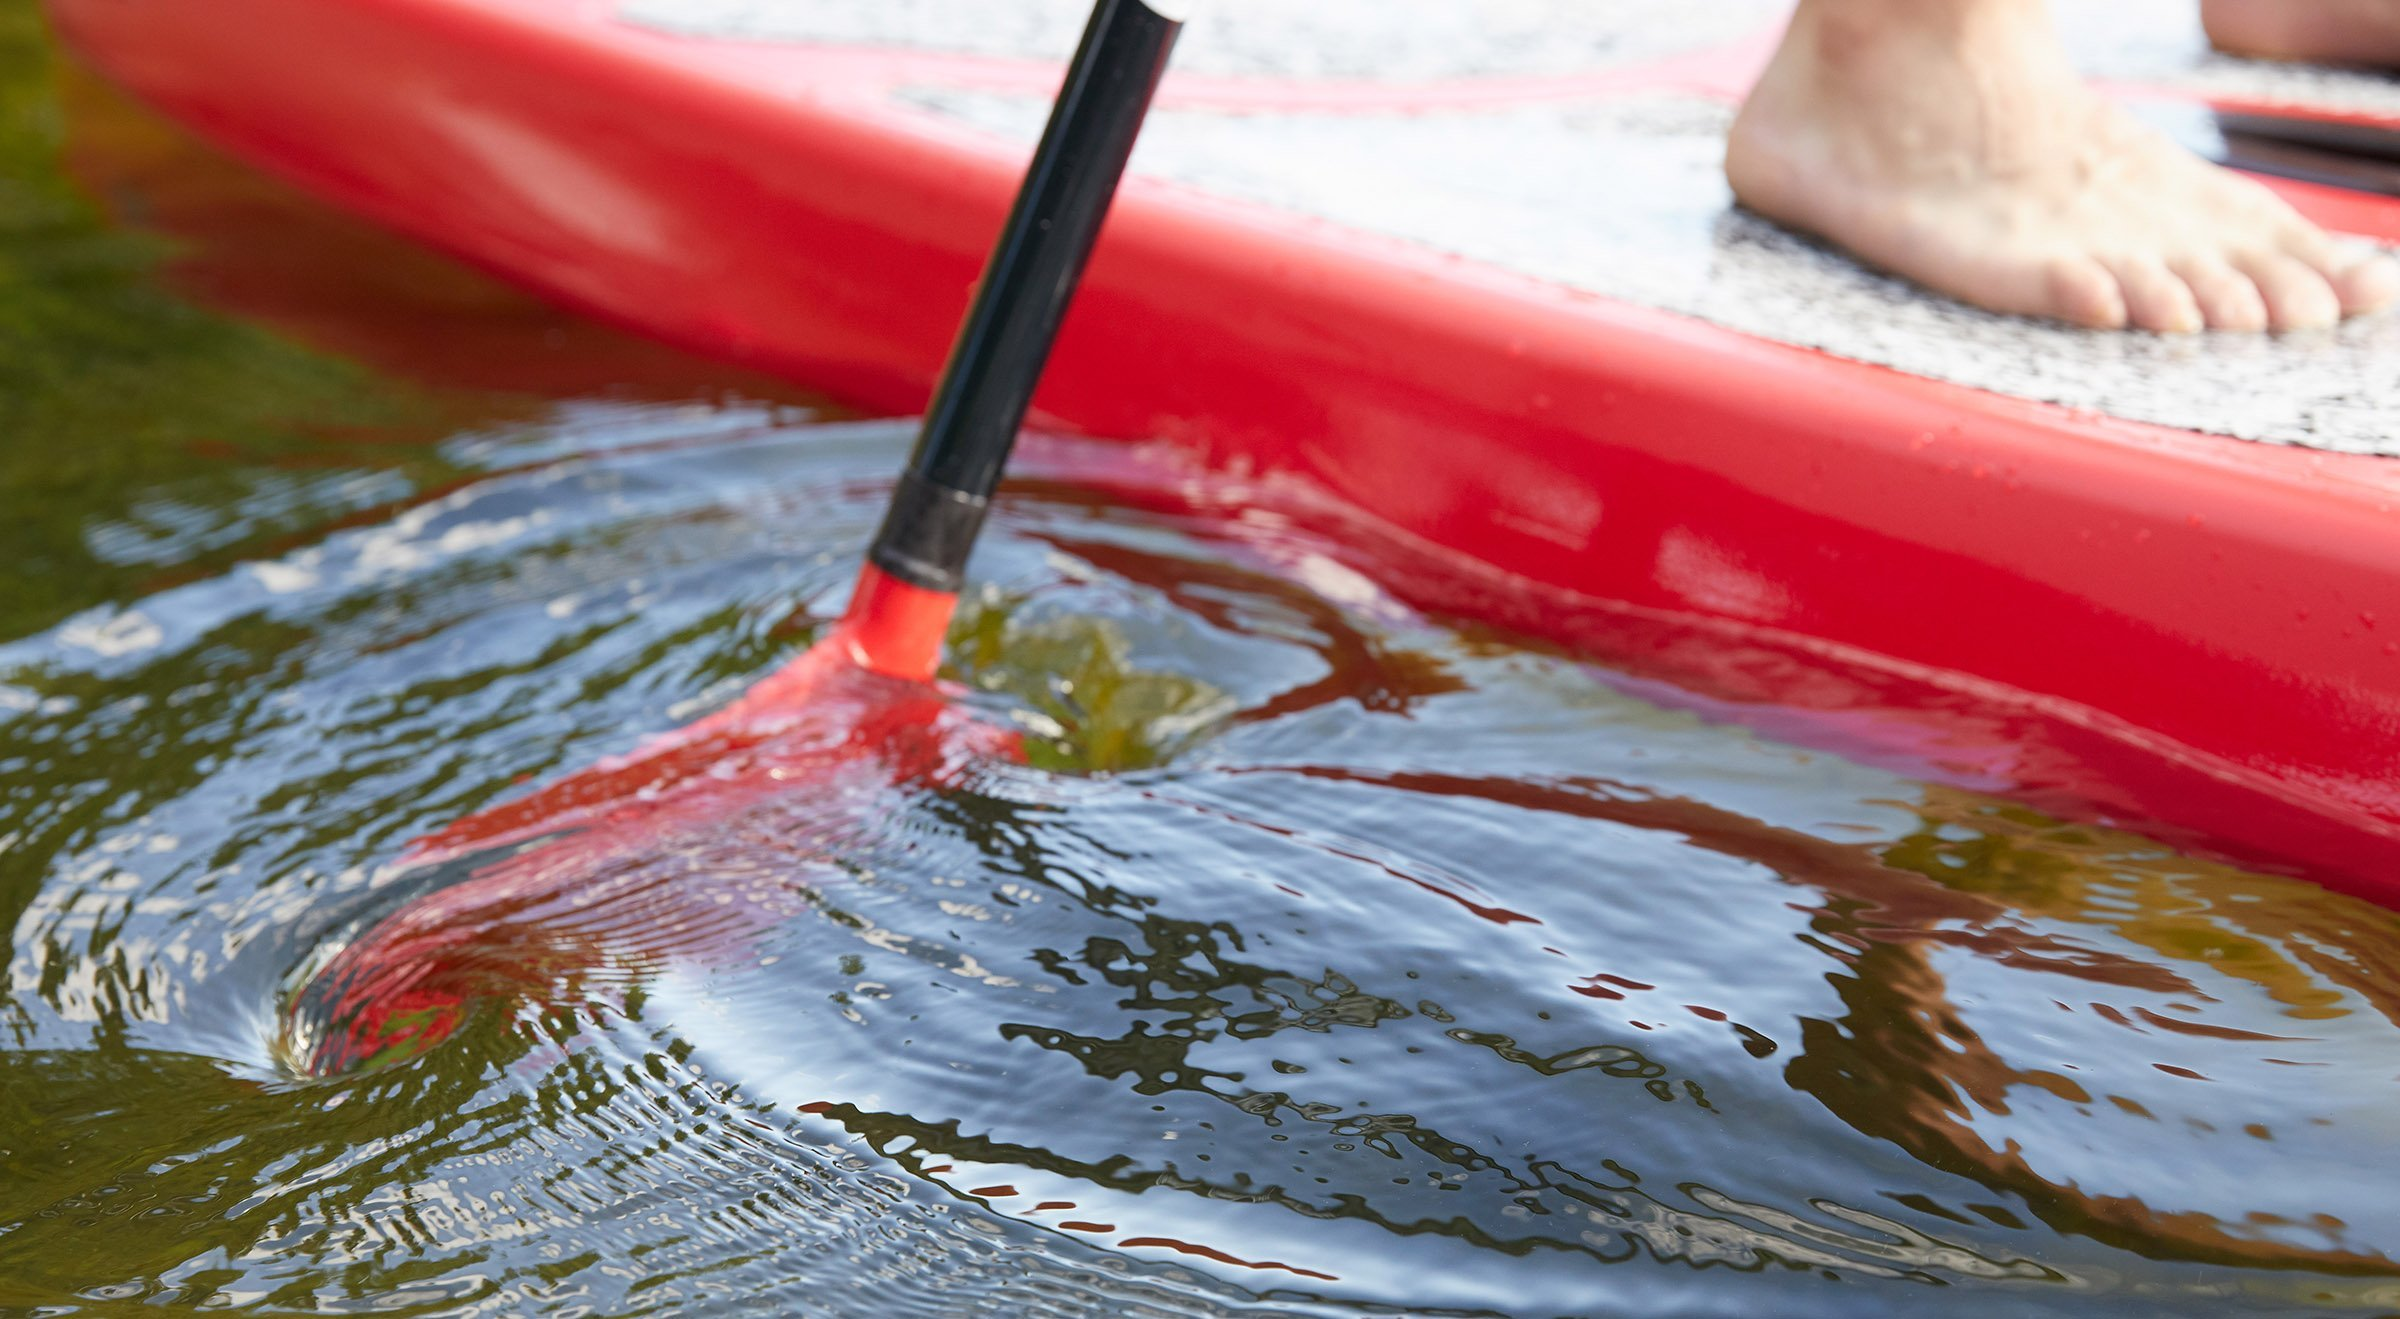 red paddle moving through water